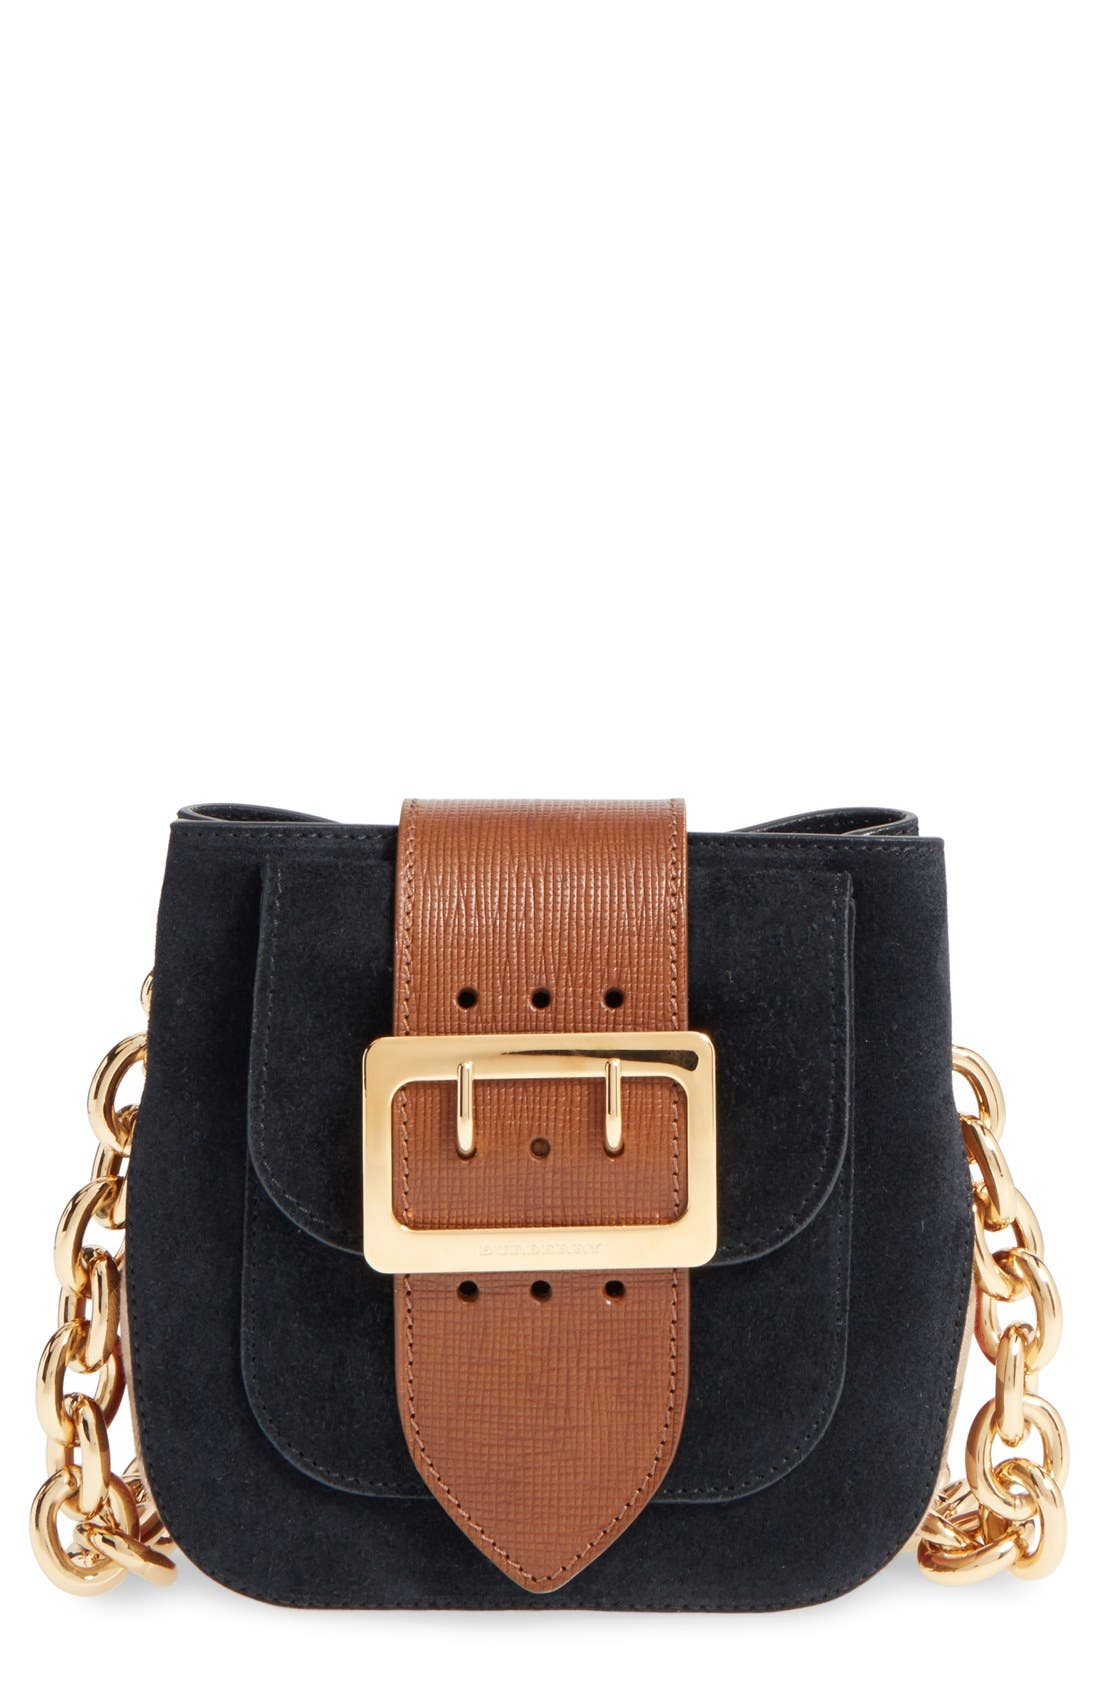 Main Image - Burberry Suede & Canvas Convertible Crossbody Bag